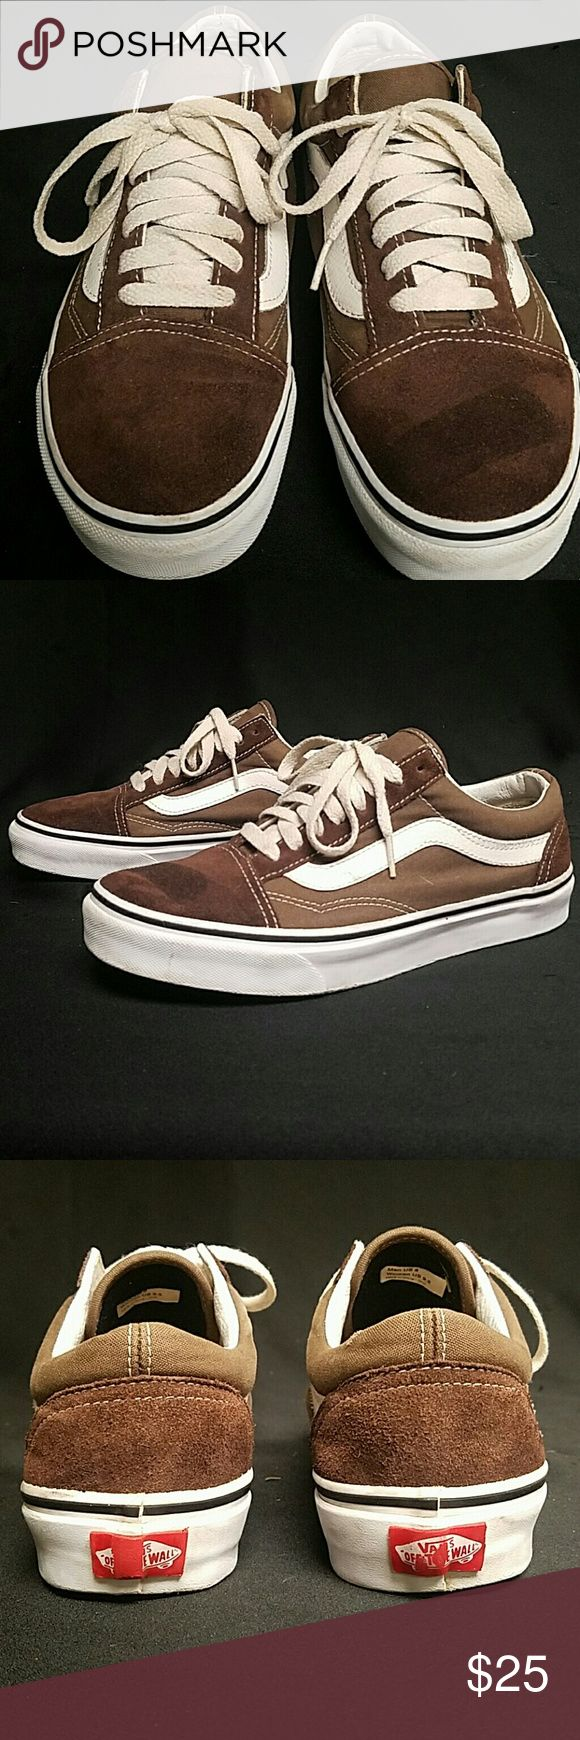 Vans Old skool Size 8 Men Excellent Condition! Up for sale is a pair of Vans Old Skool Shoes Size 8 Men All Suede BARELY WORN With new laces these shoes will look Brand New. Ships same day, guaranteed. Vans Shoes